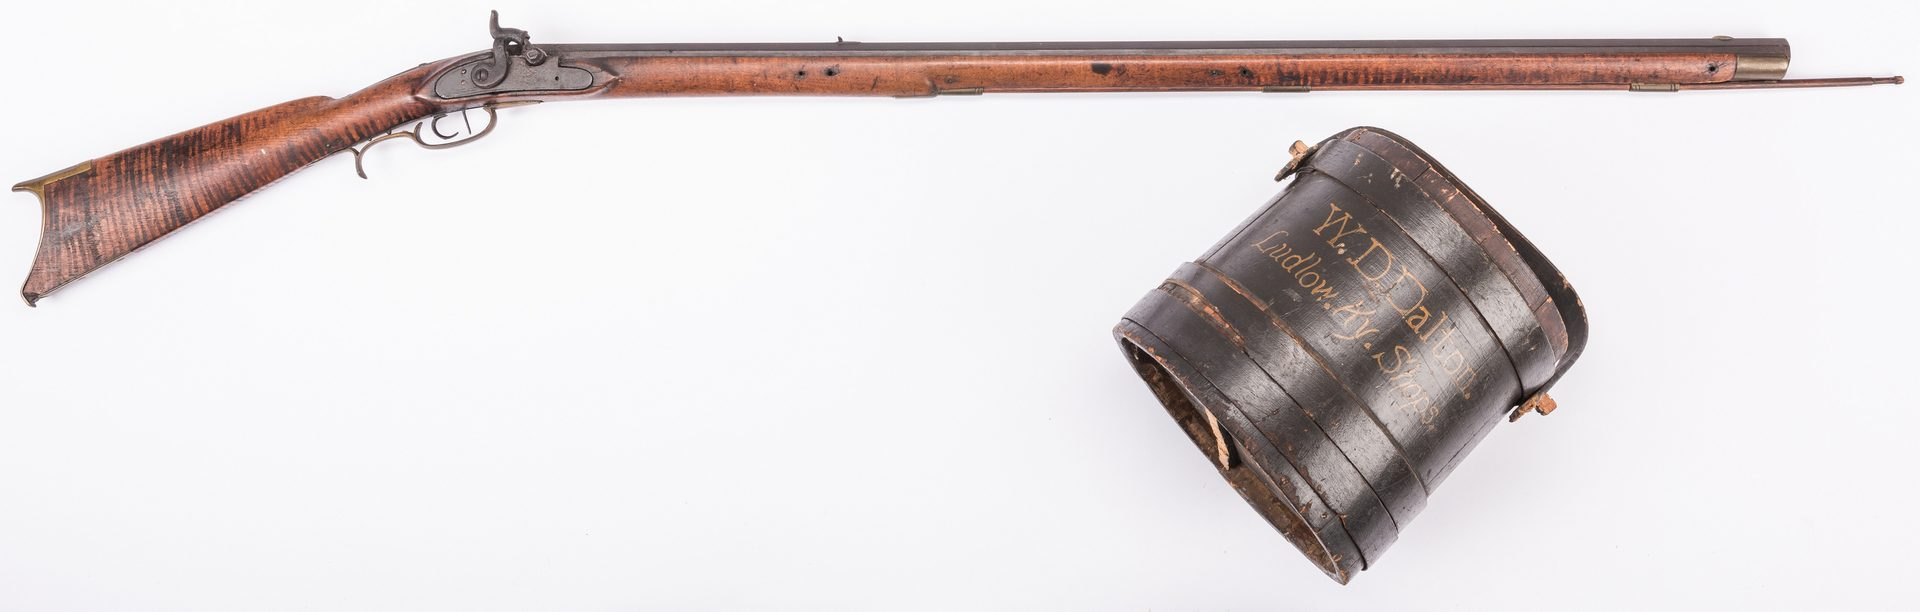 Lot 498: Kentucky Long Rifle and Advertising Bucket